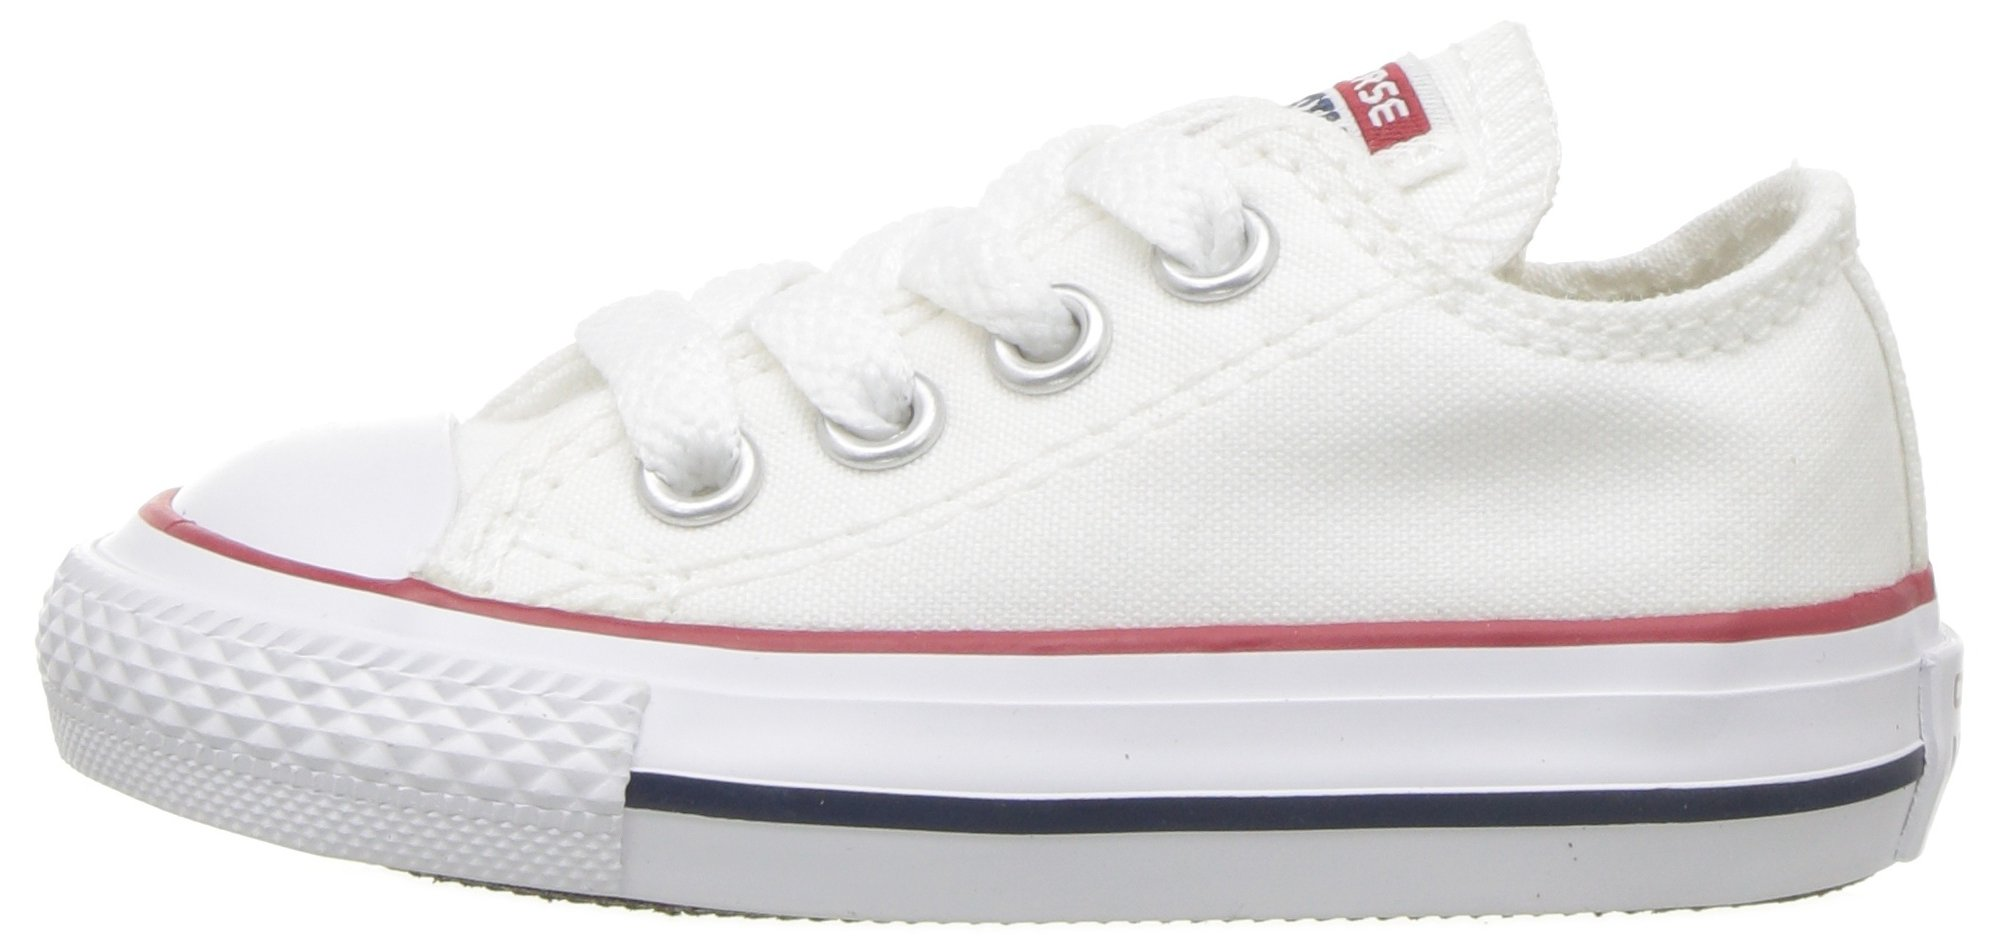 Converse Chuck Taylor All Star Canvas Low Top Sneaker, Optical White, 13.5 M US Little Kid by Converse (Image #5)